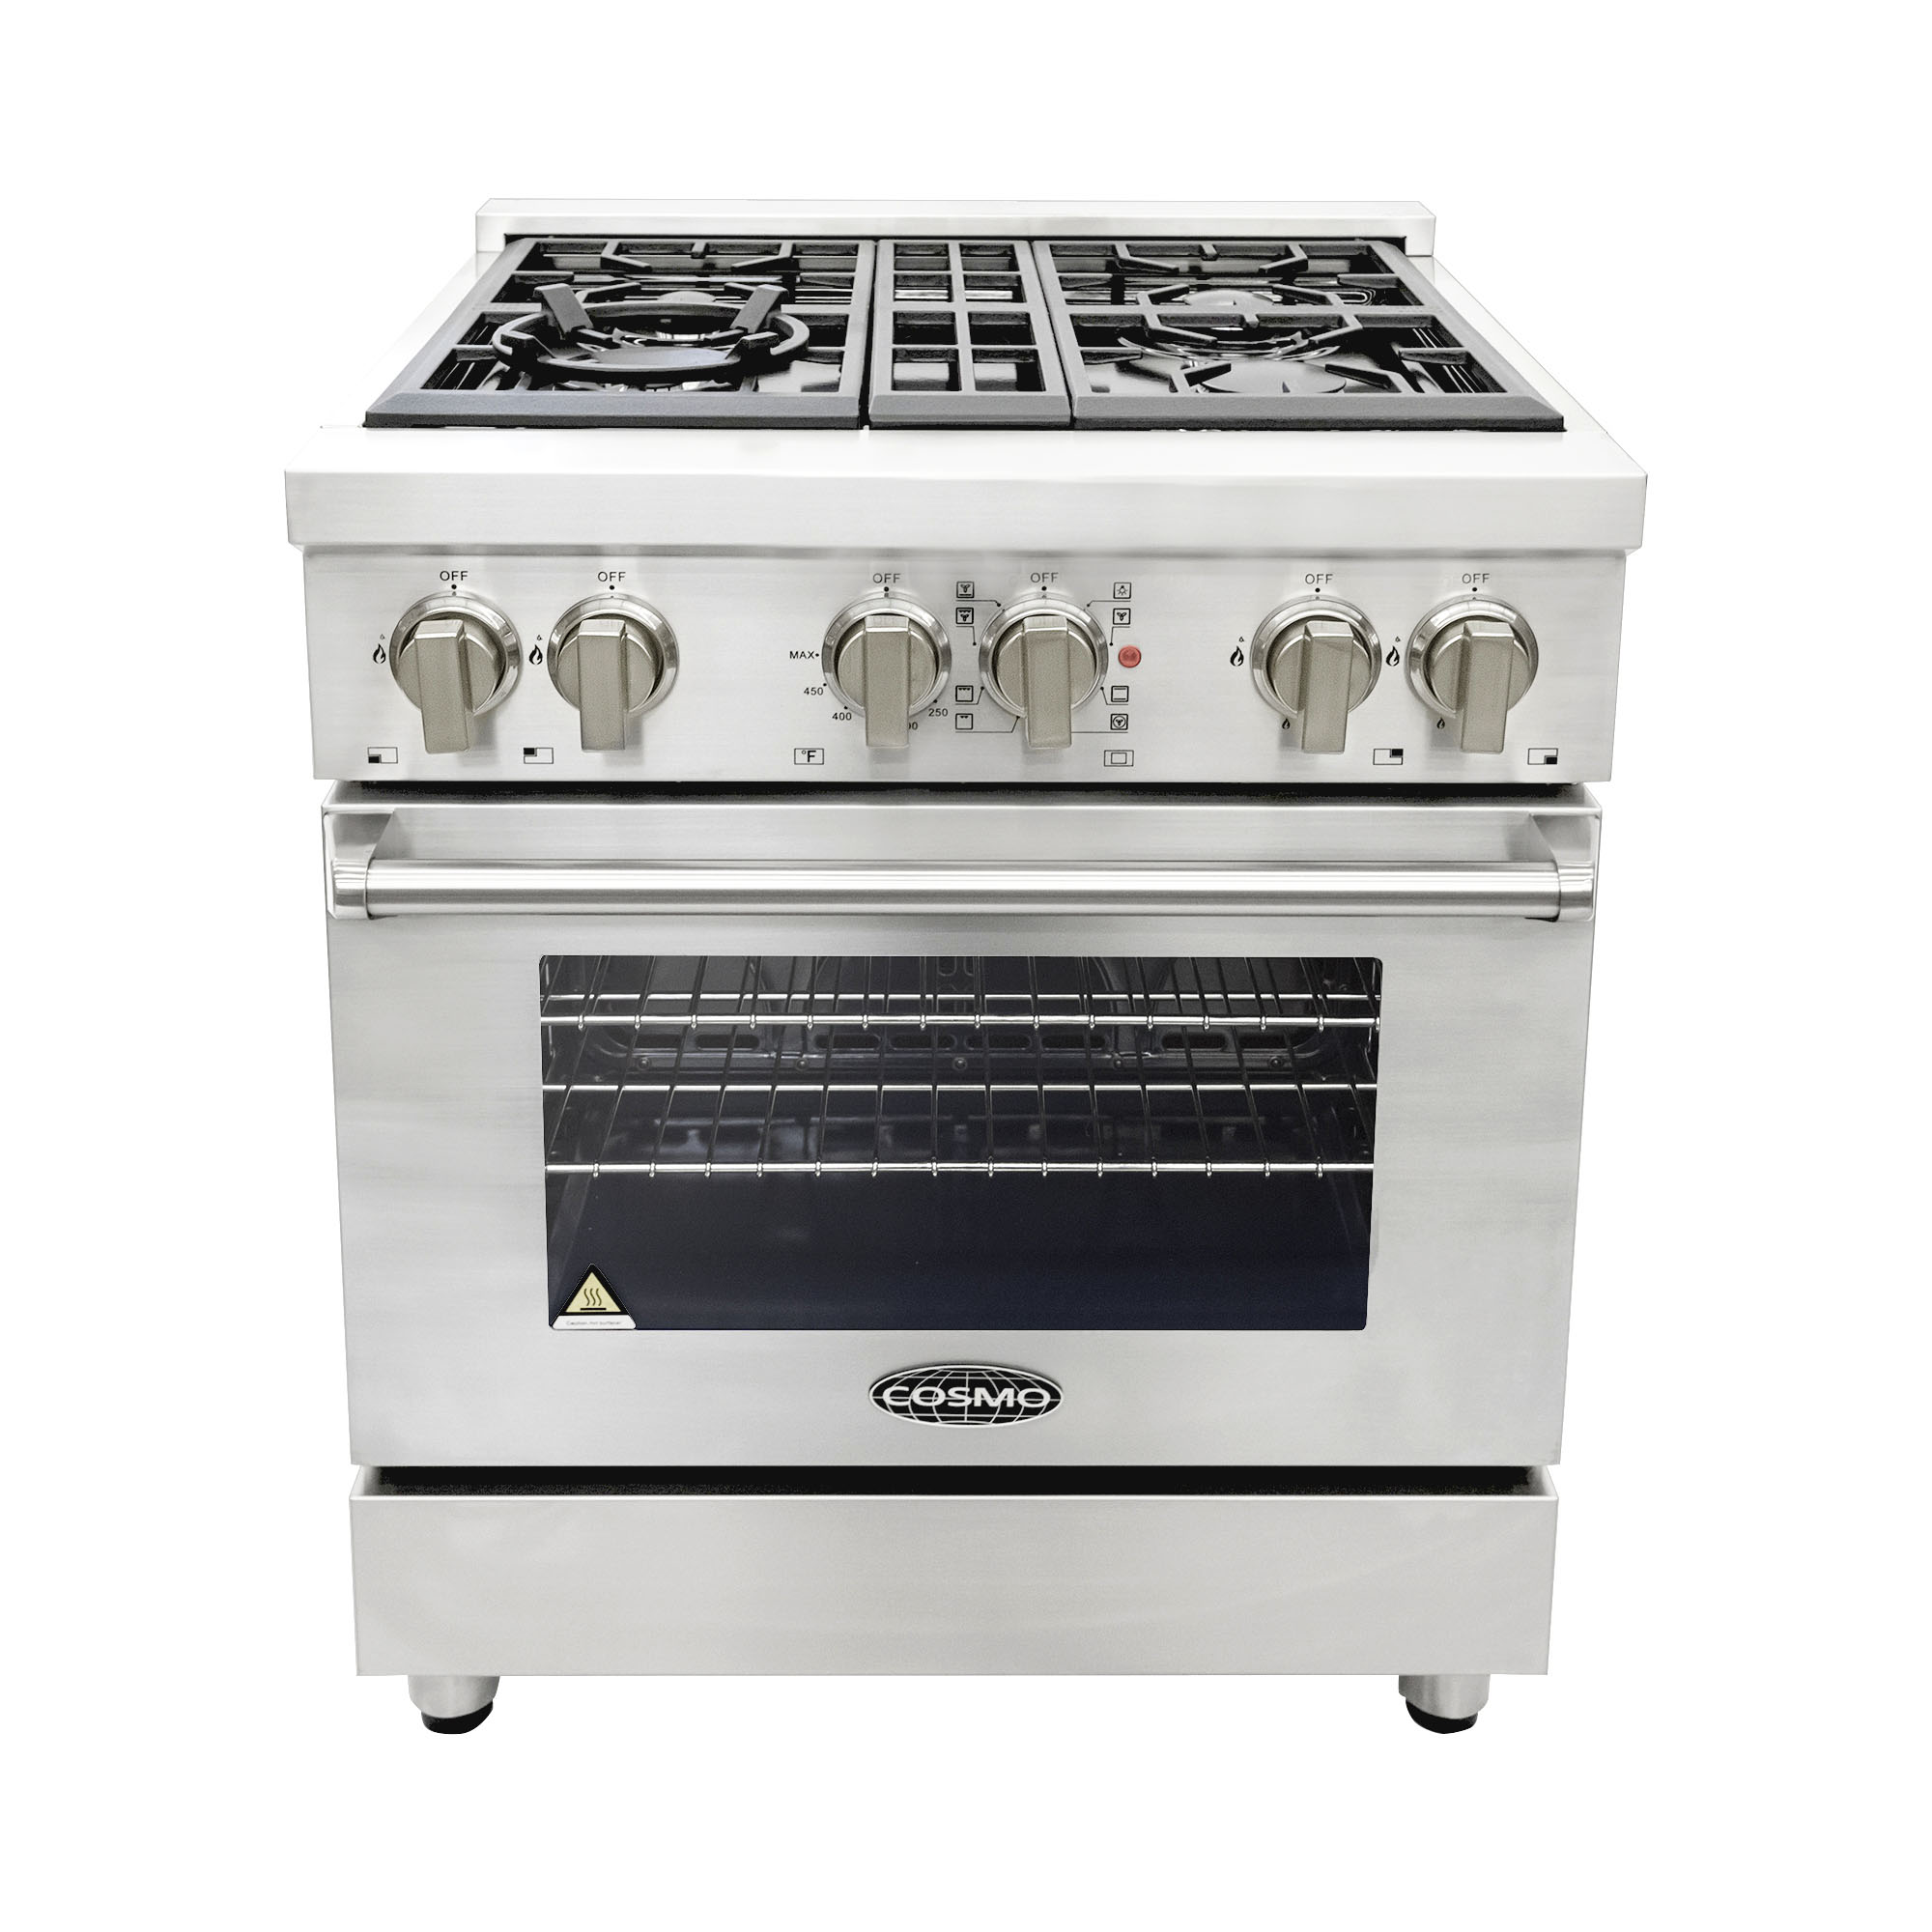 Cosmo Ranges COS-DFR304 30 in. Dual Fuel Range with 4 Italian Made Burners and Convection Oven by Cosmo Appliances